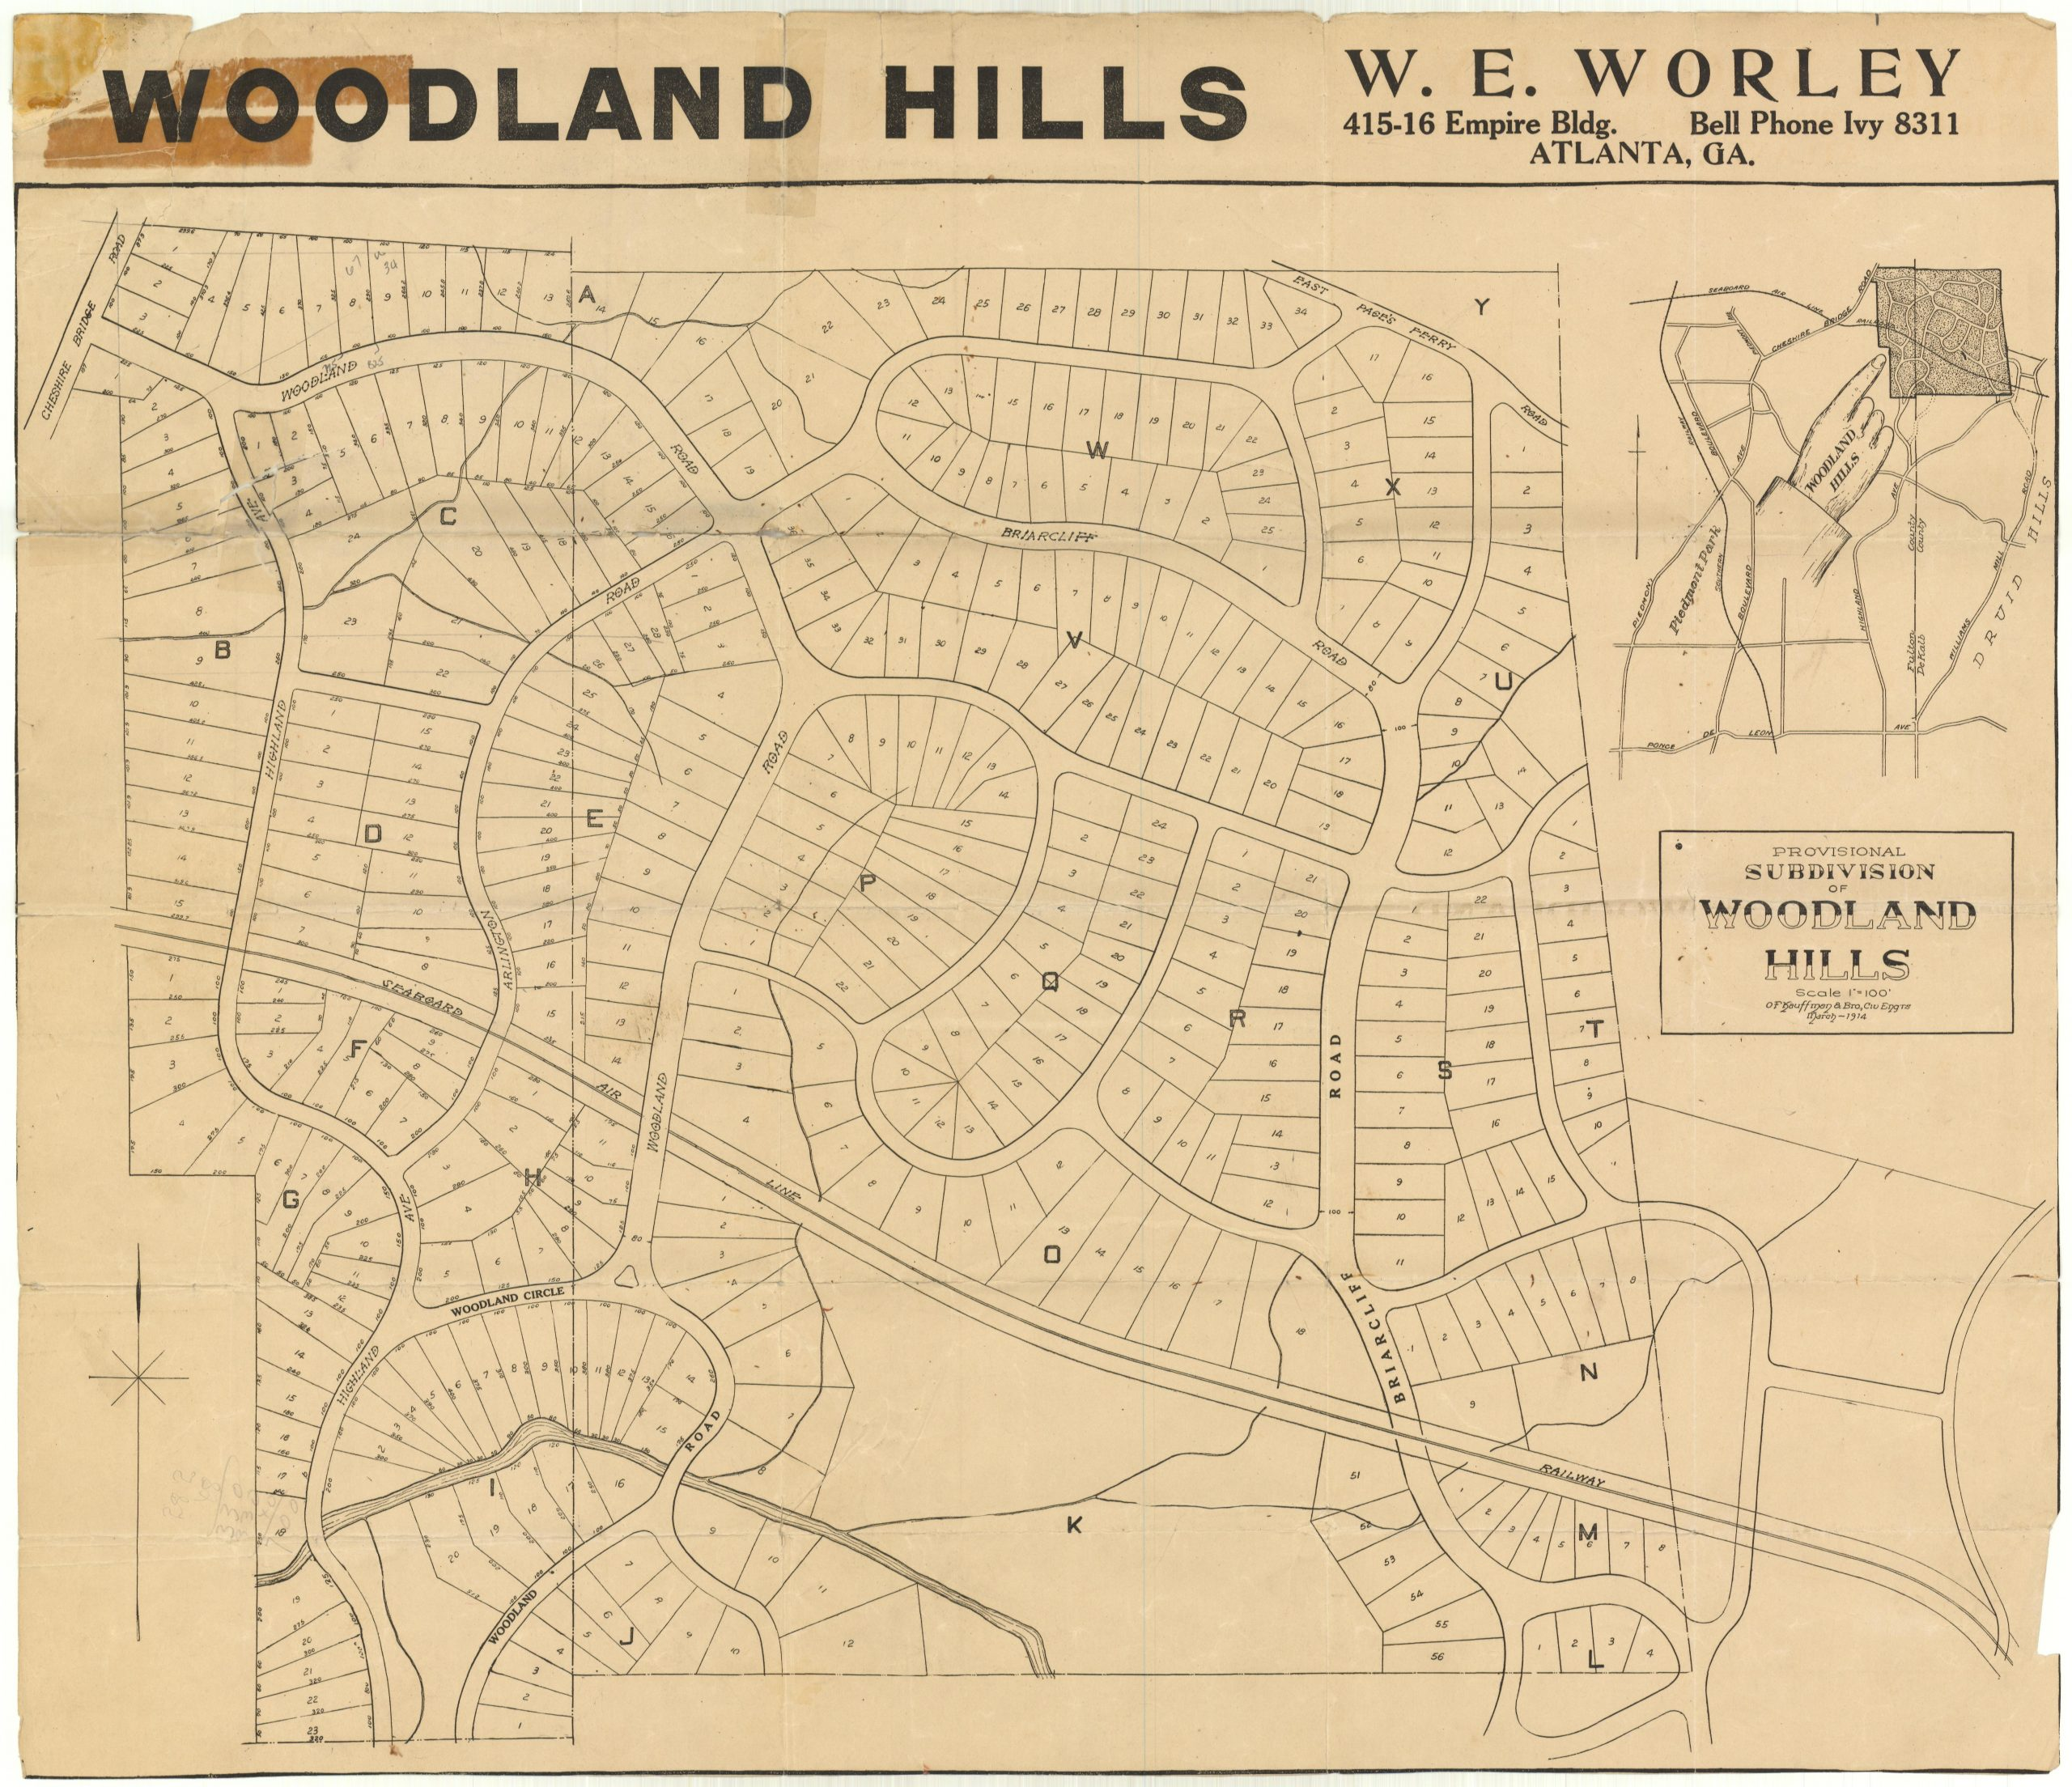 Provisional Survey of Woodland Hills Subdivision by O.F. Kauffman dated March 1914 for W. E. Worley